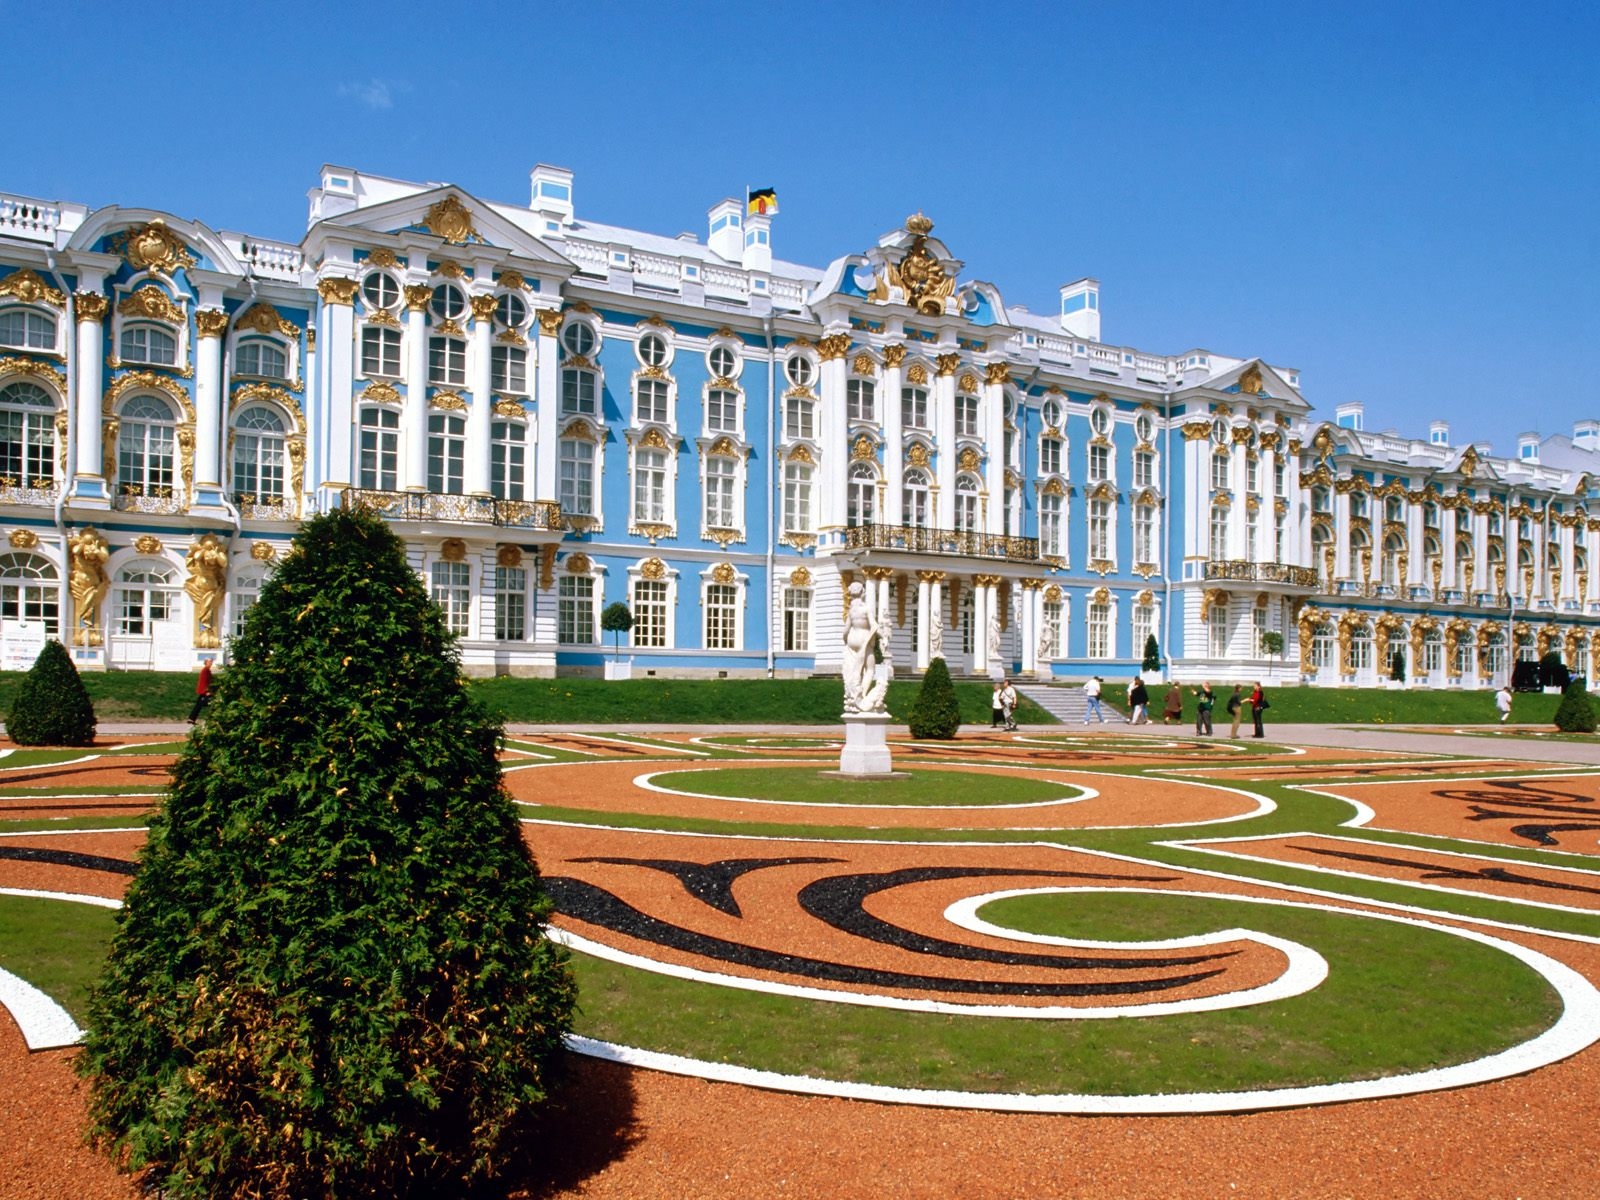 Tourism Catherine Palace